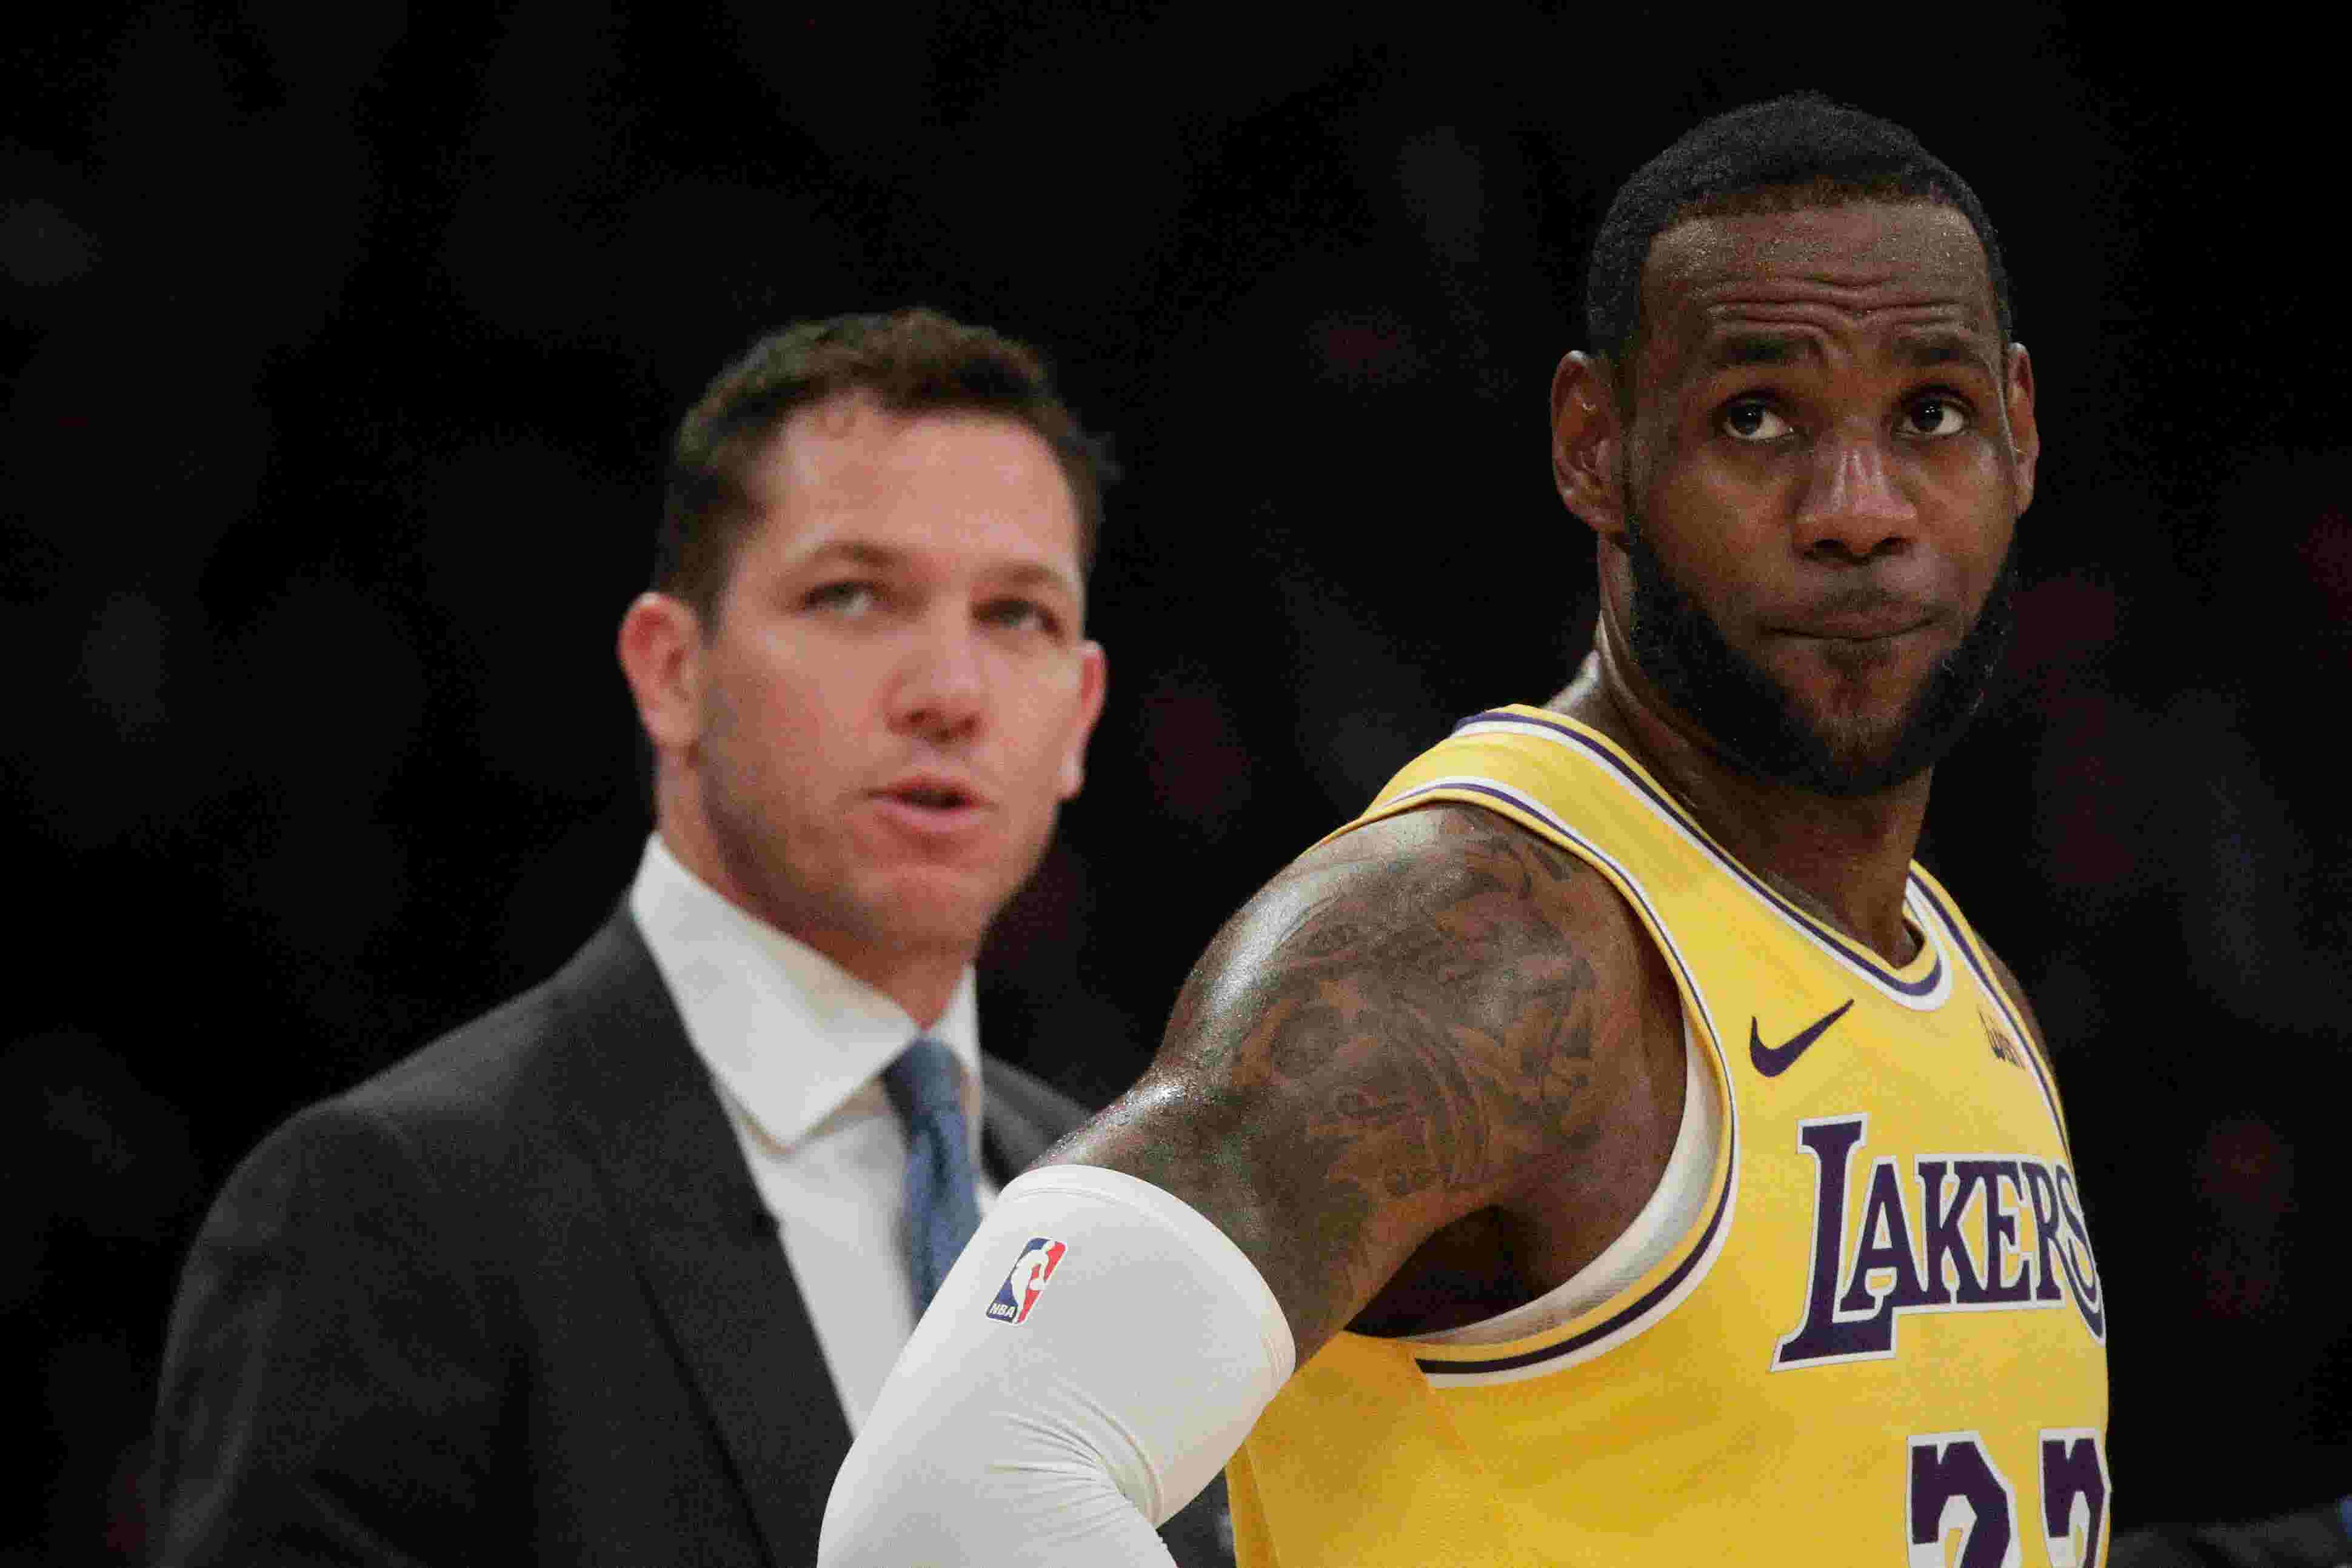 a76a0e090 Opinion: LeBron James' first Lakers season is over, and he still needs to  earn fans' loyalty